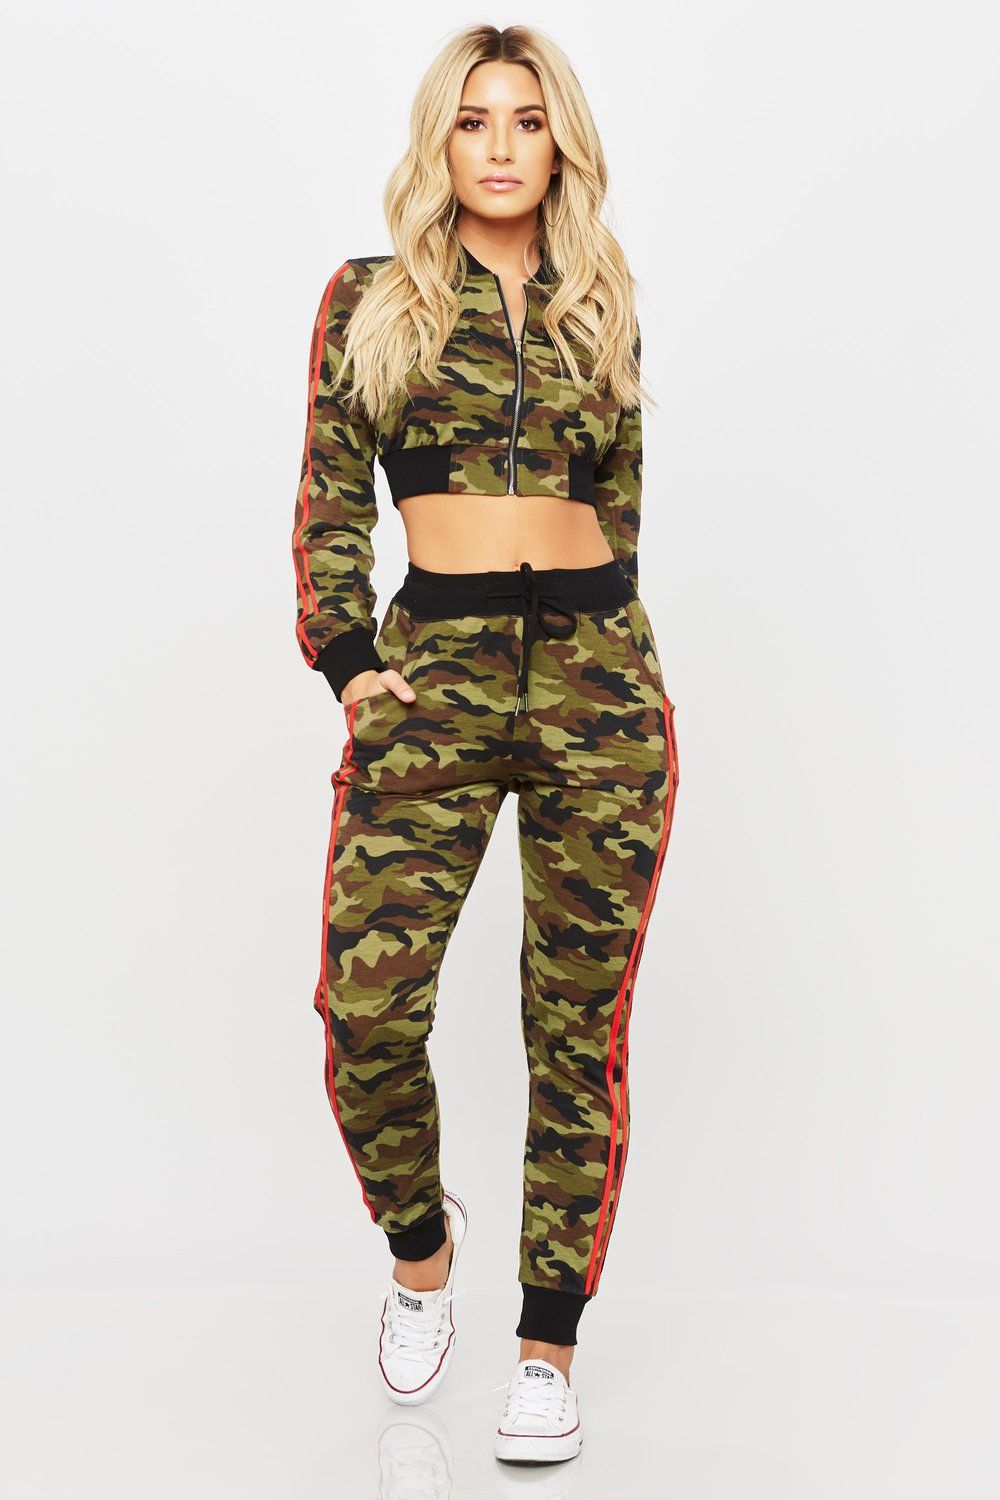 Wholesale Crop Top Hoodie And Jogger Pants Set Loose Fit